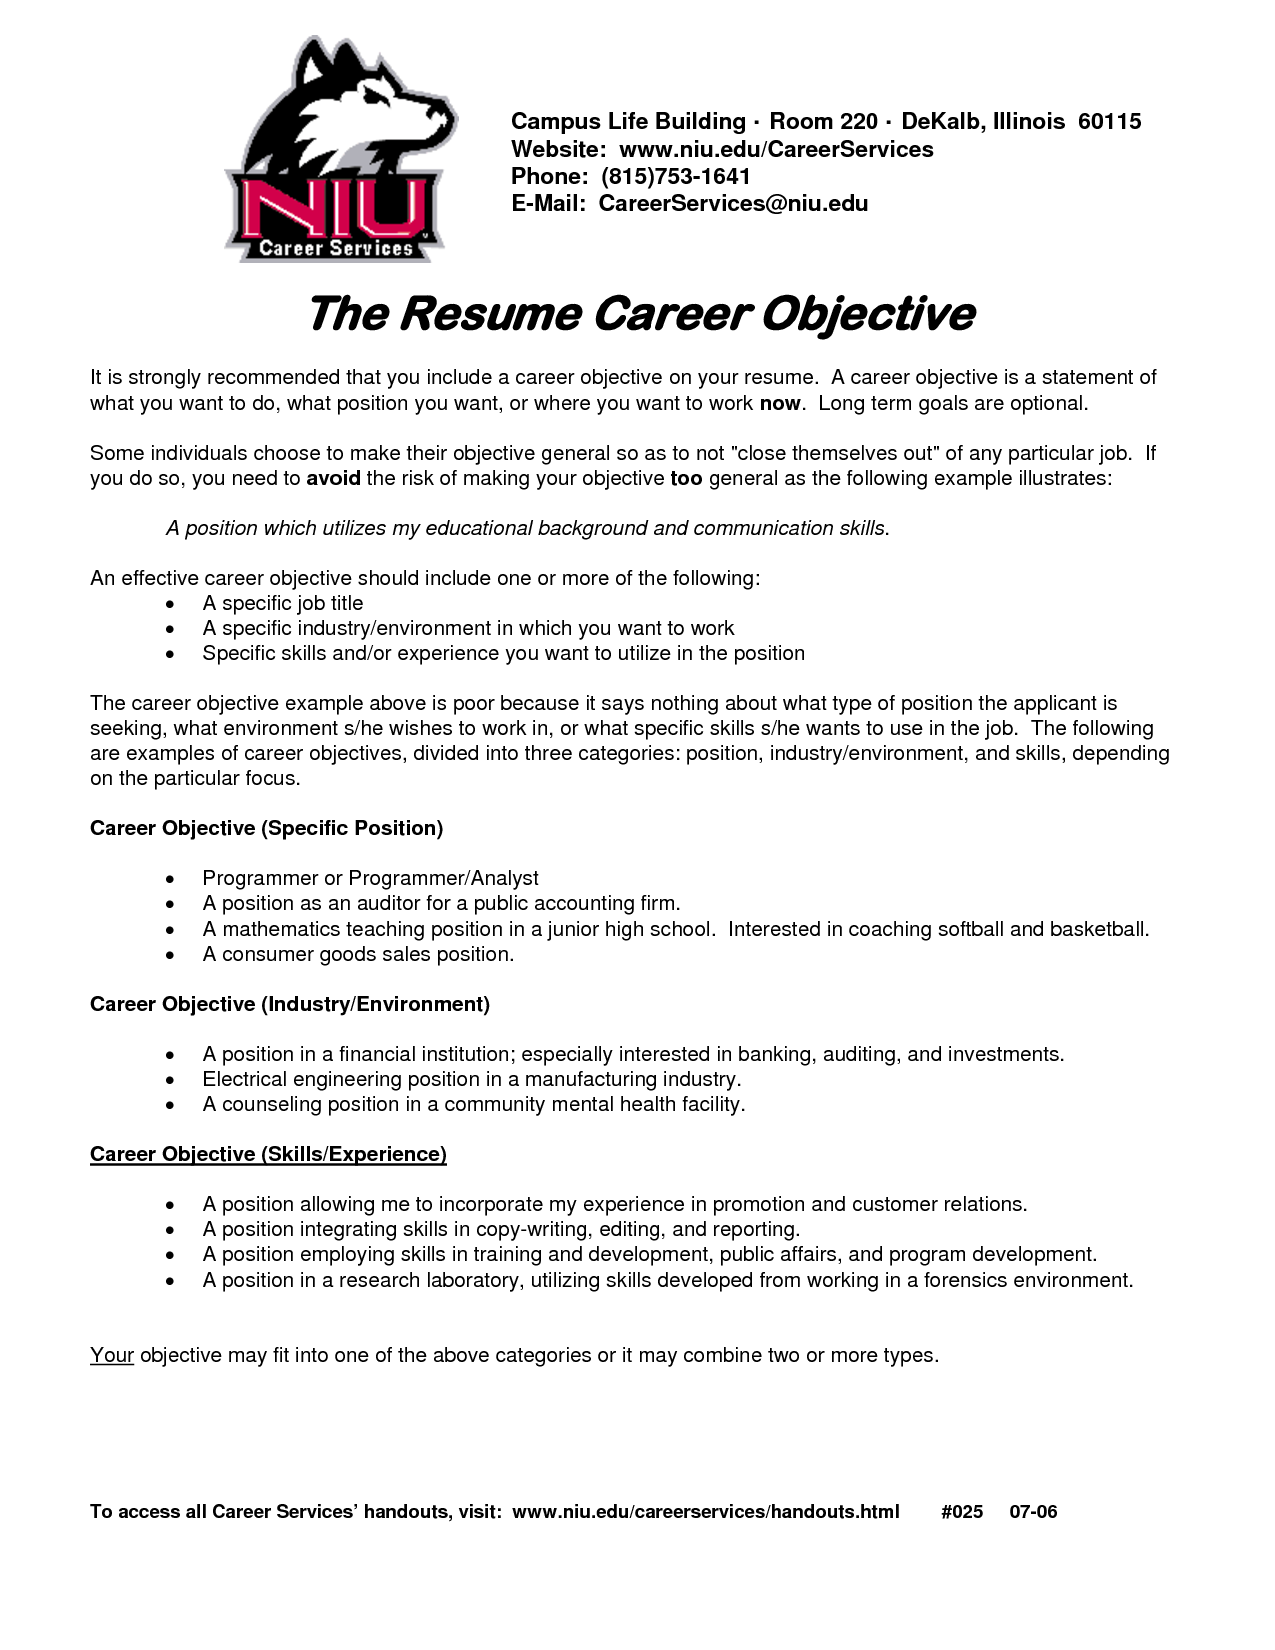 Career Objective Resume Examples Captivating Httpswww.googlesearchqobjective Resume  Resume .